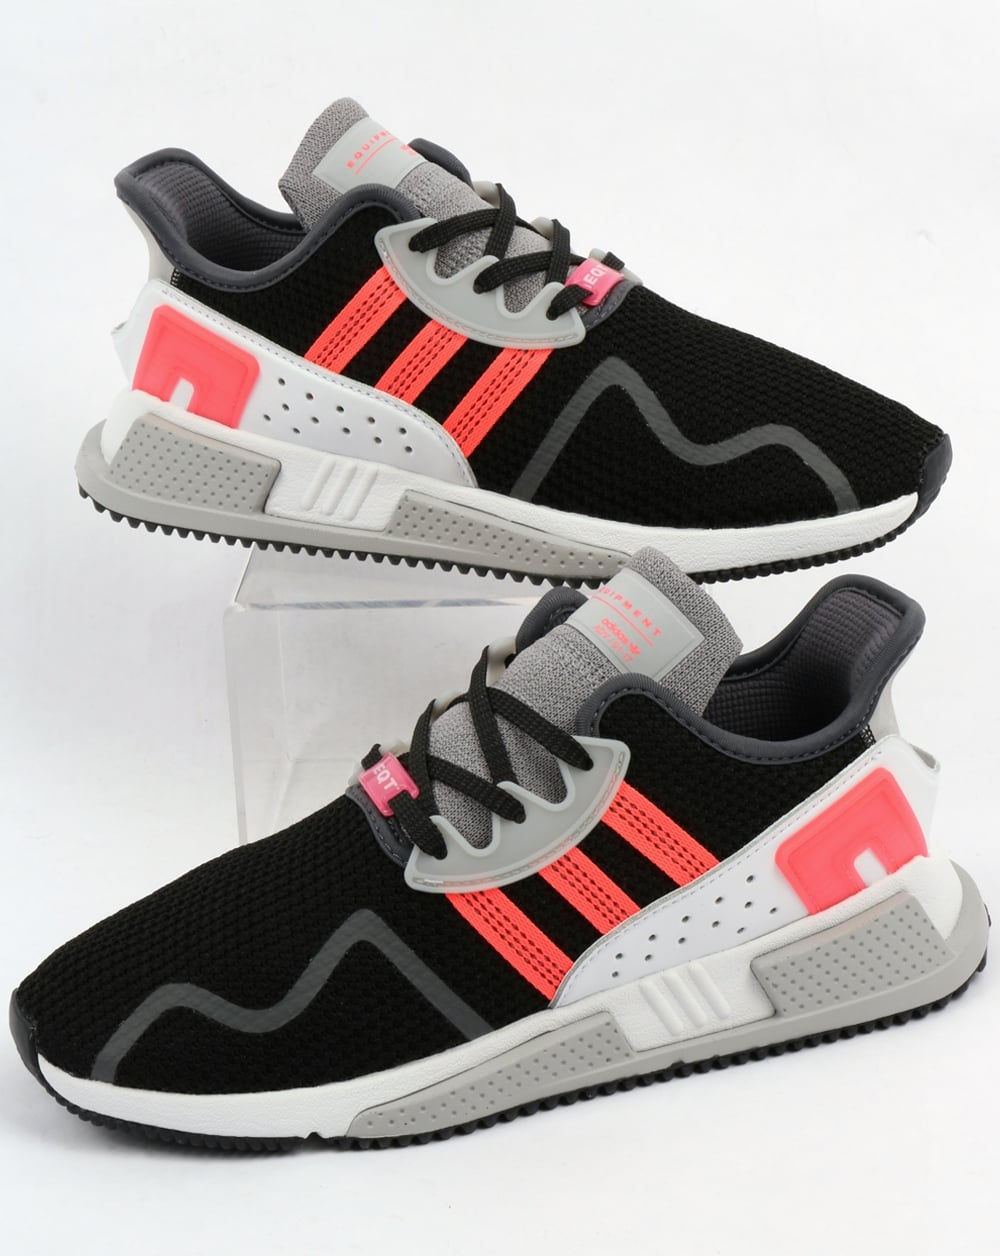 newest 20f96 1bac6 Adidas EQT Cushion Adv Trainers Black/Pink/White